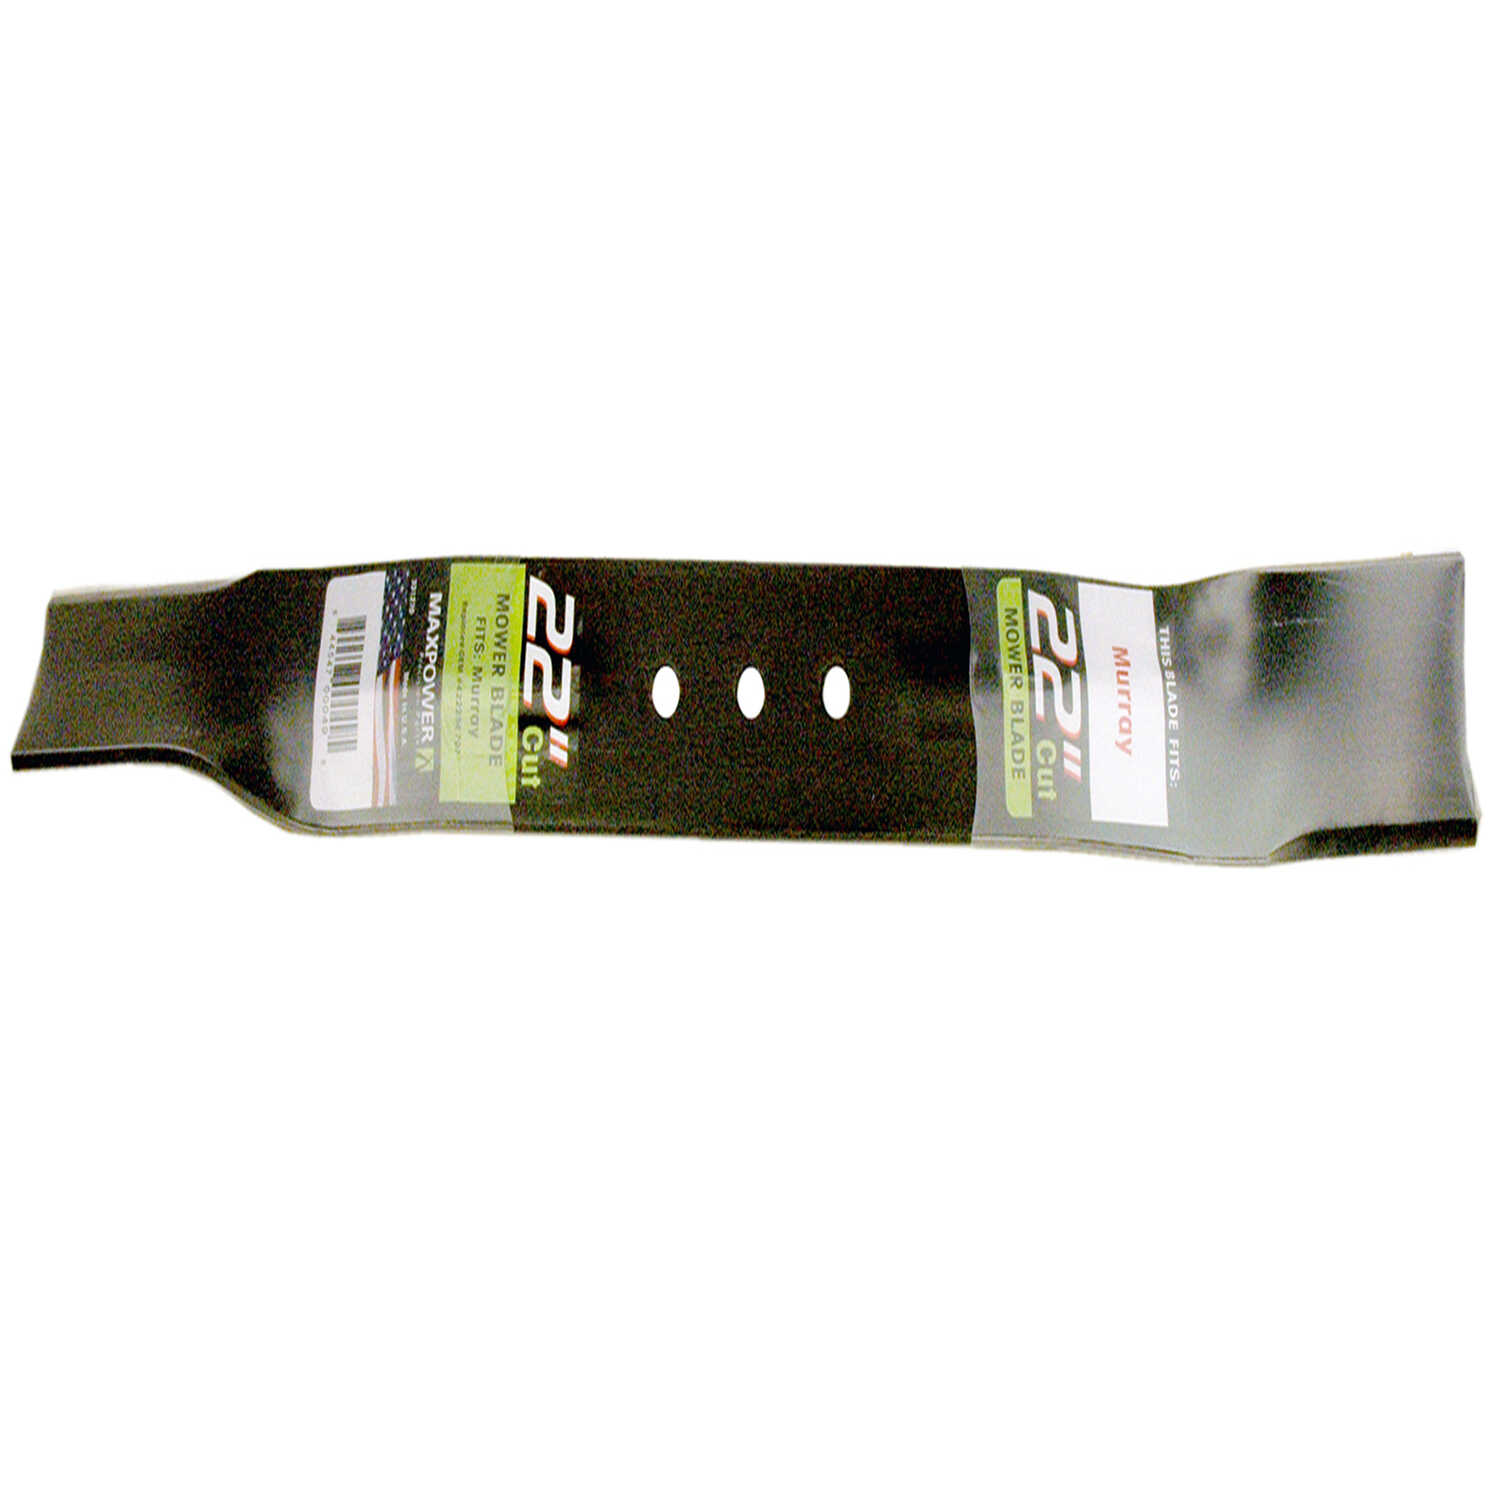 MaxPower  22 in. Standard  Mower Blade  For Walk-Behind Mowers 1 pk